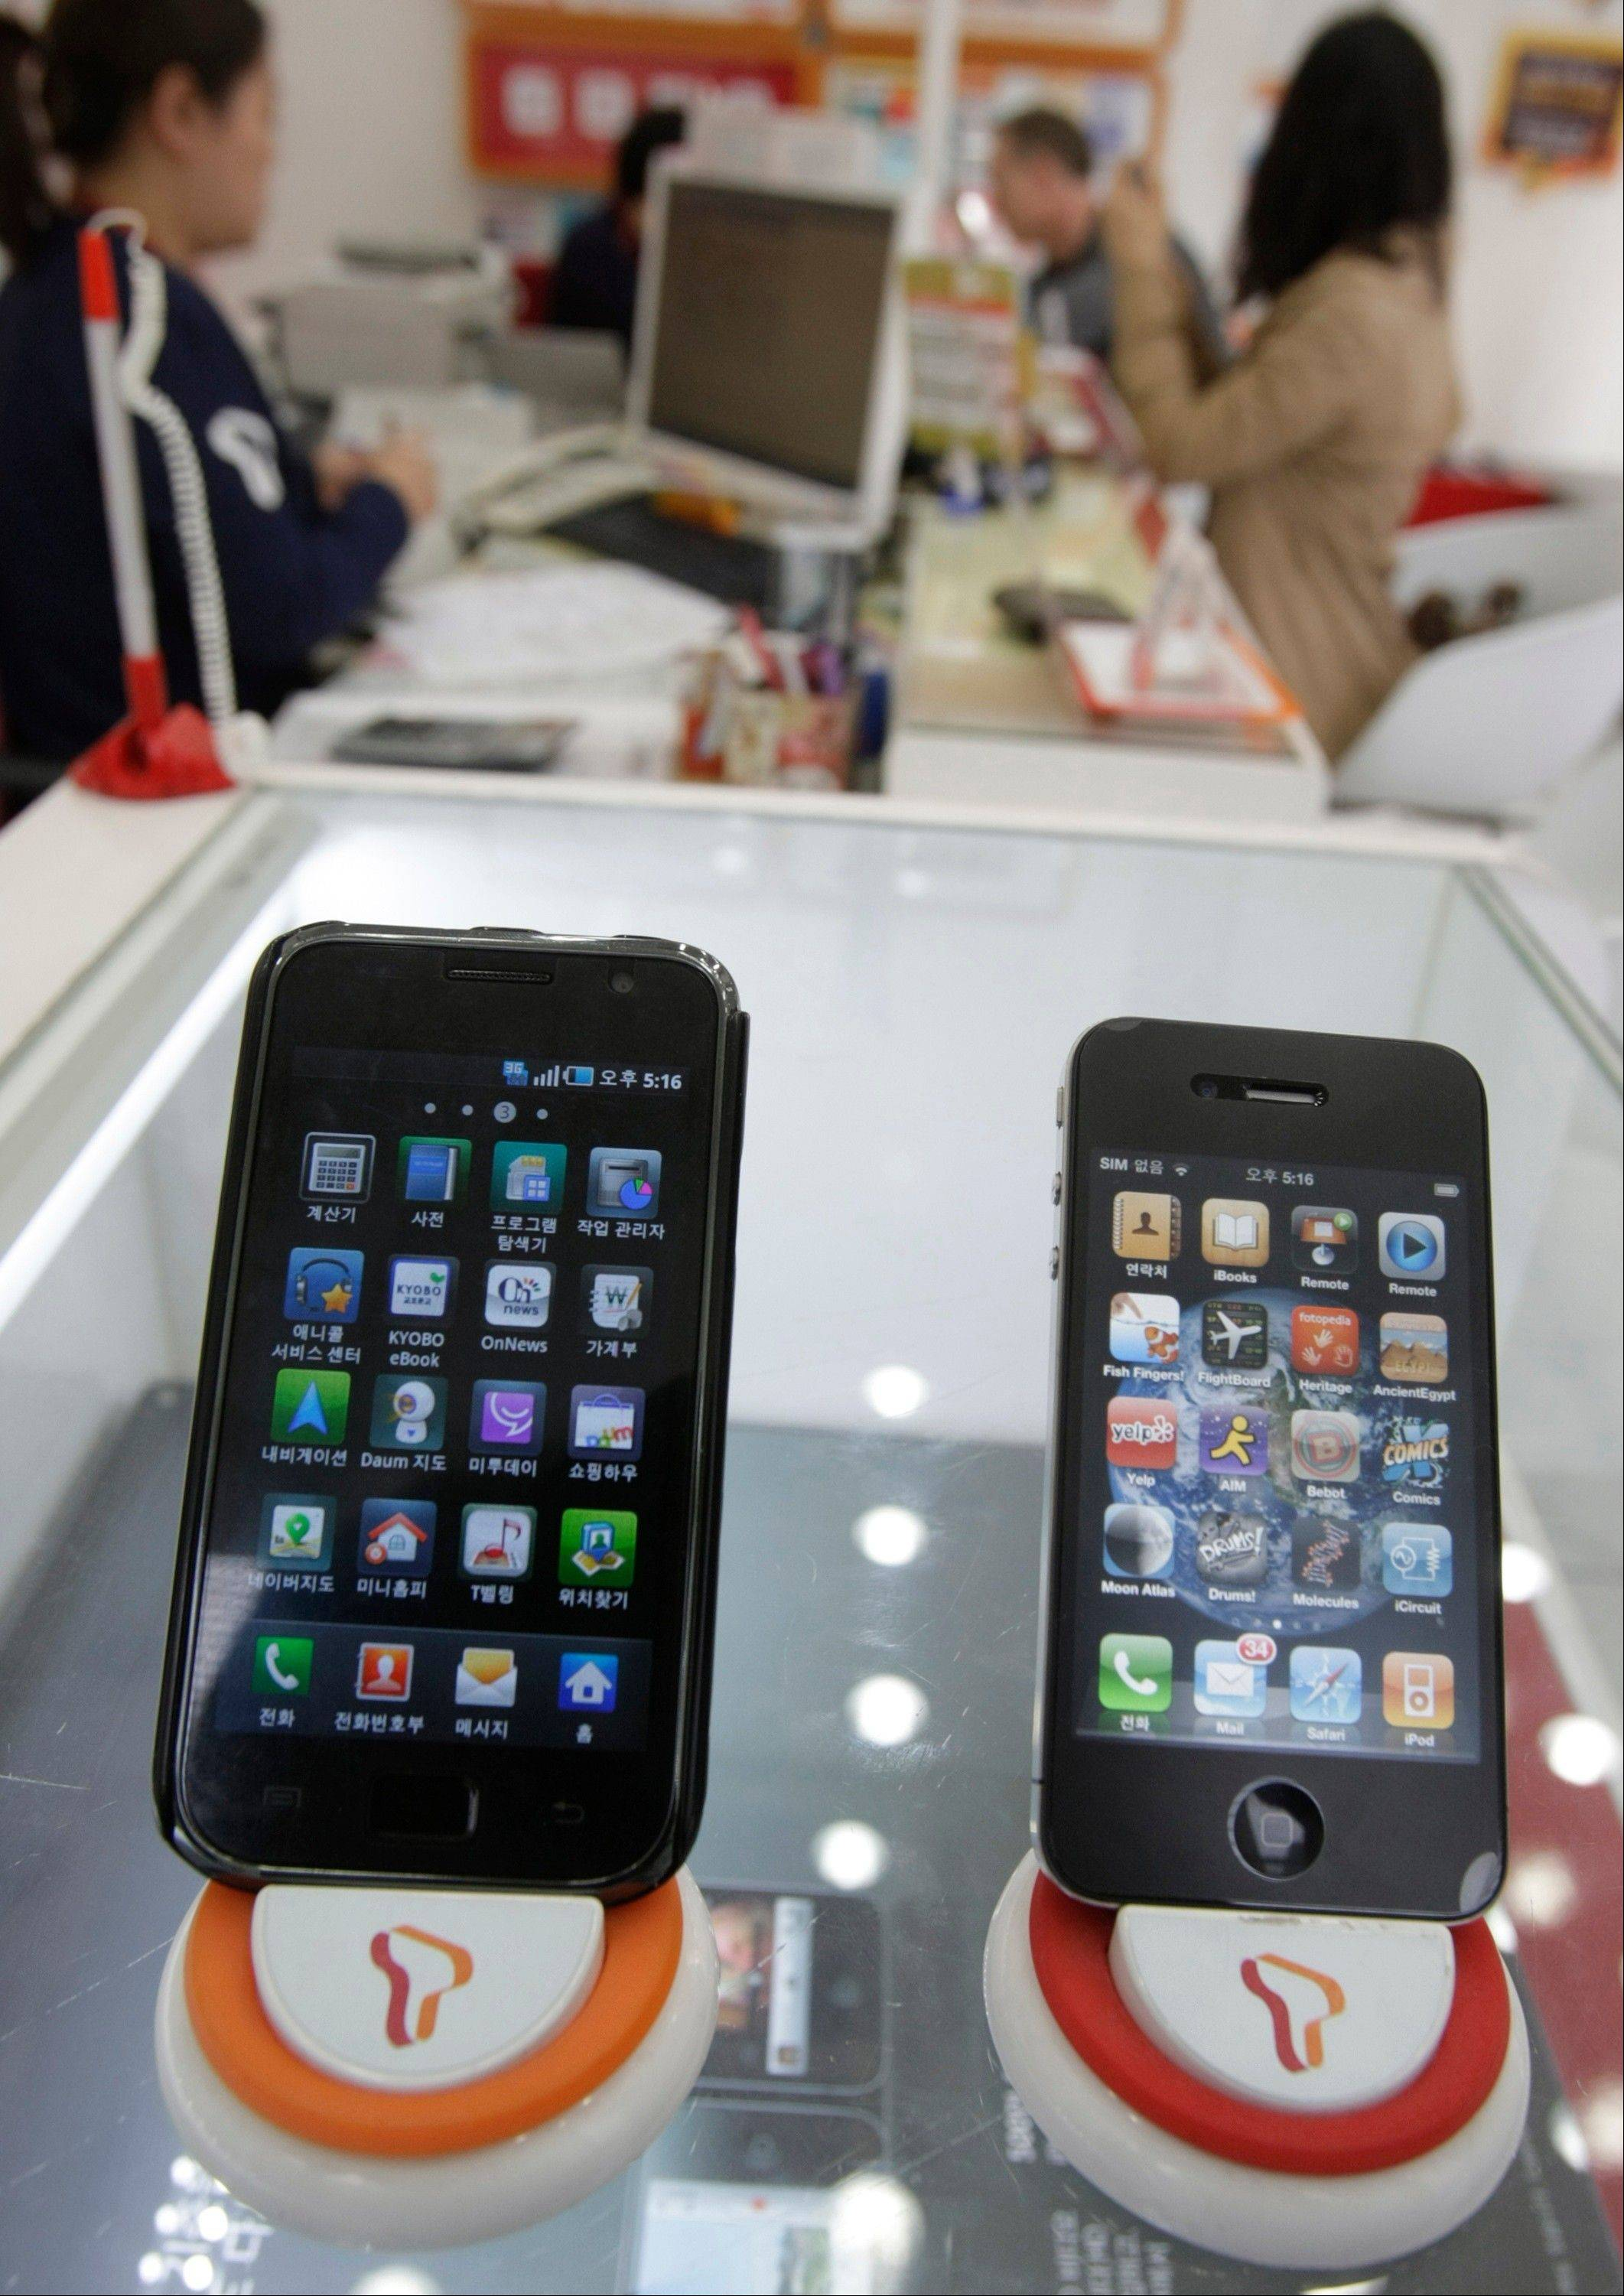 Samsung Electronics� Galaxy S, left, and Apple�s iPhone 4 are displayed at a mobile phone shop in Seoul, South Korea.